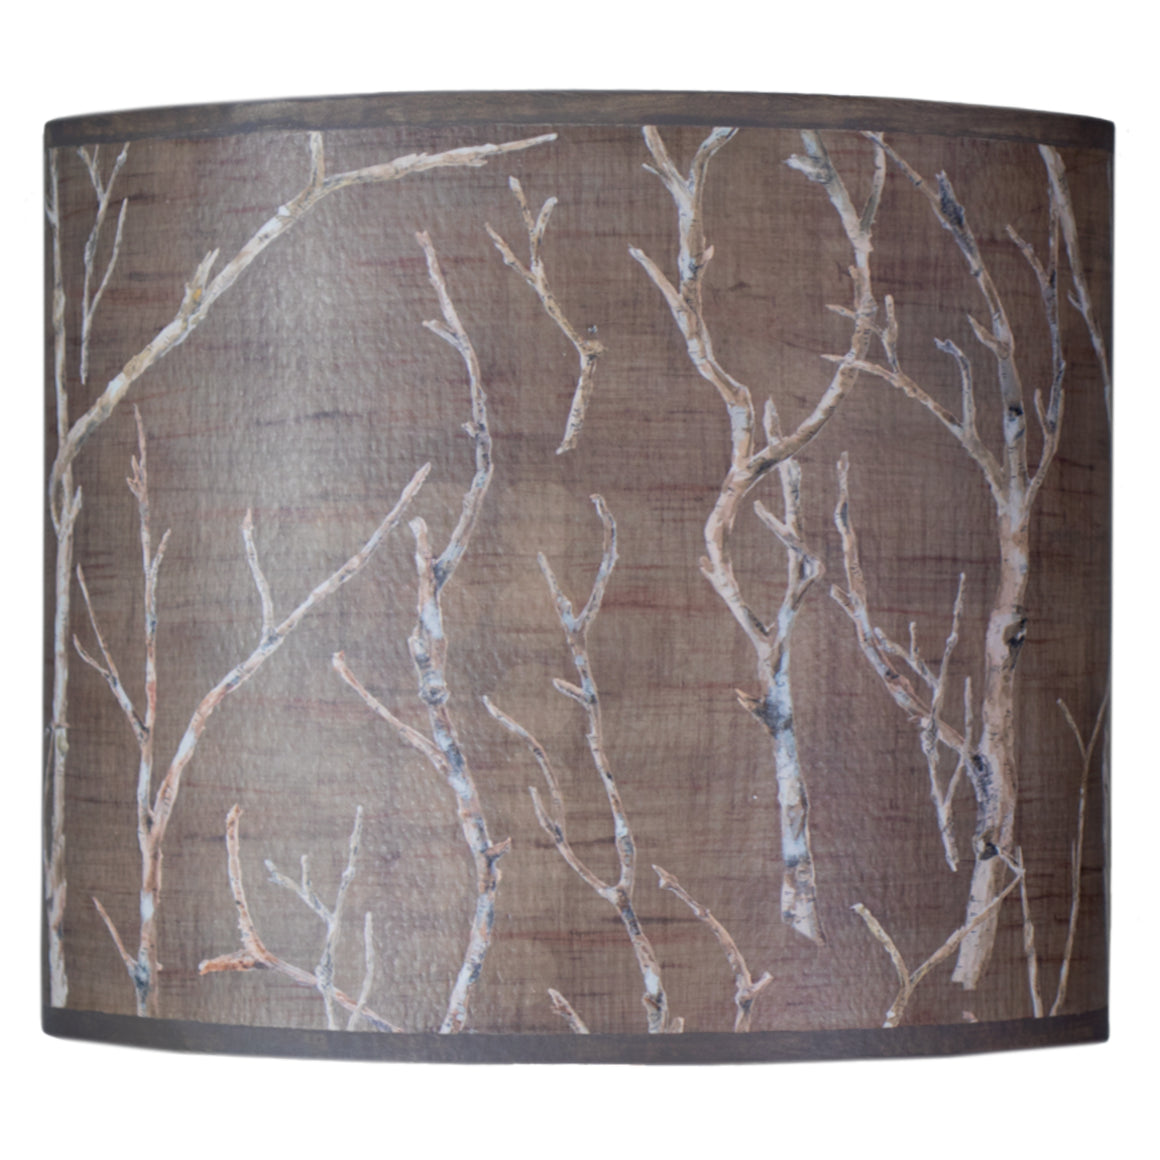 Large Oval Drum Lamp Shade in Twigs